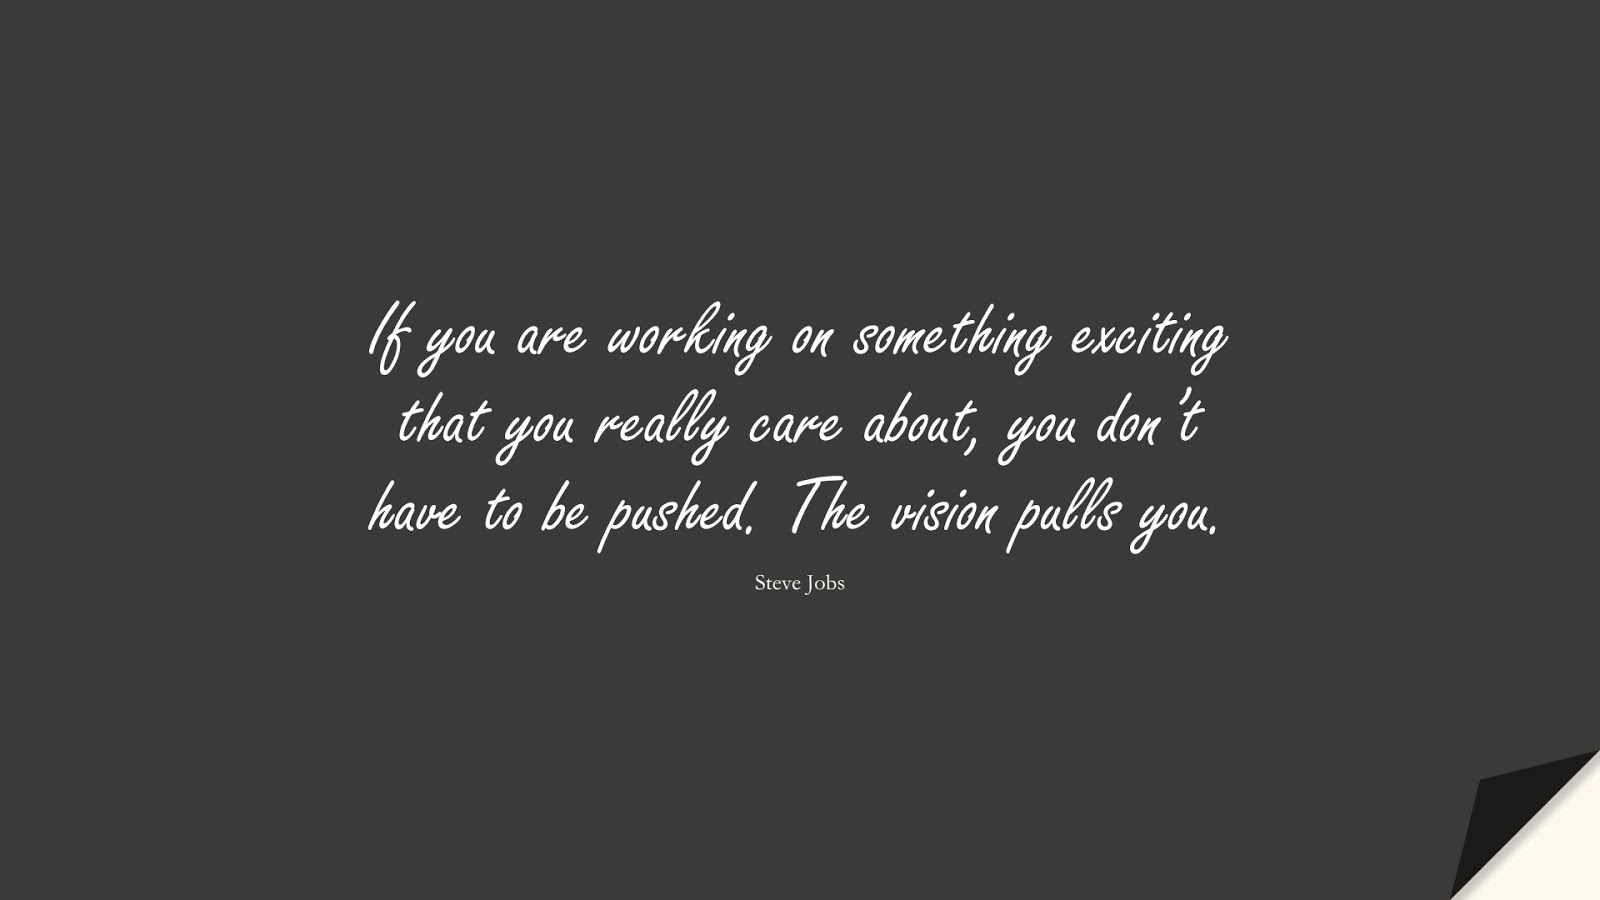 If you are working on something exciting that you really care about, you don't have to be pushed. The vision pulls you. (Steve Jobs);  #SteveJobsQuotes